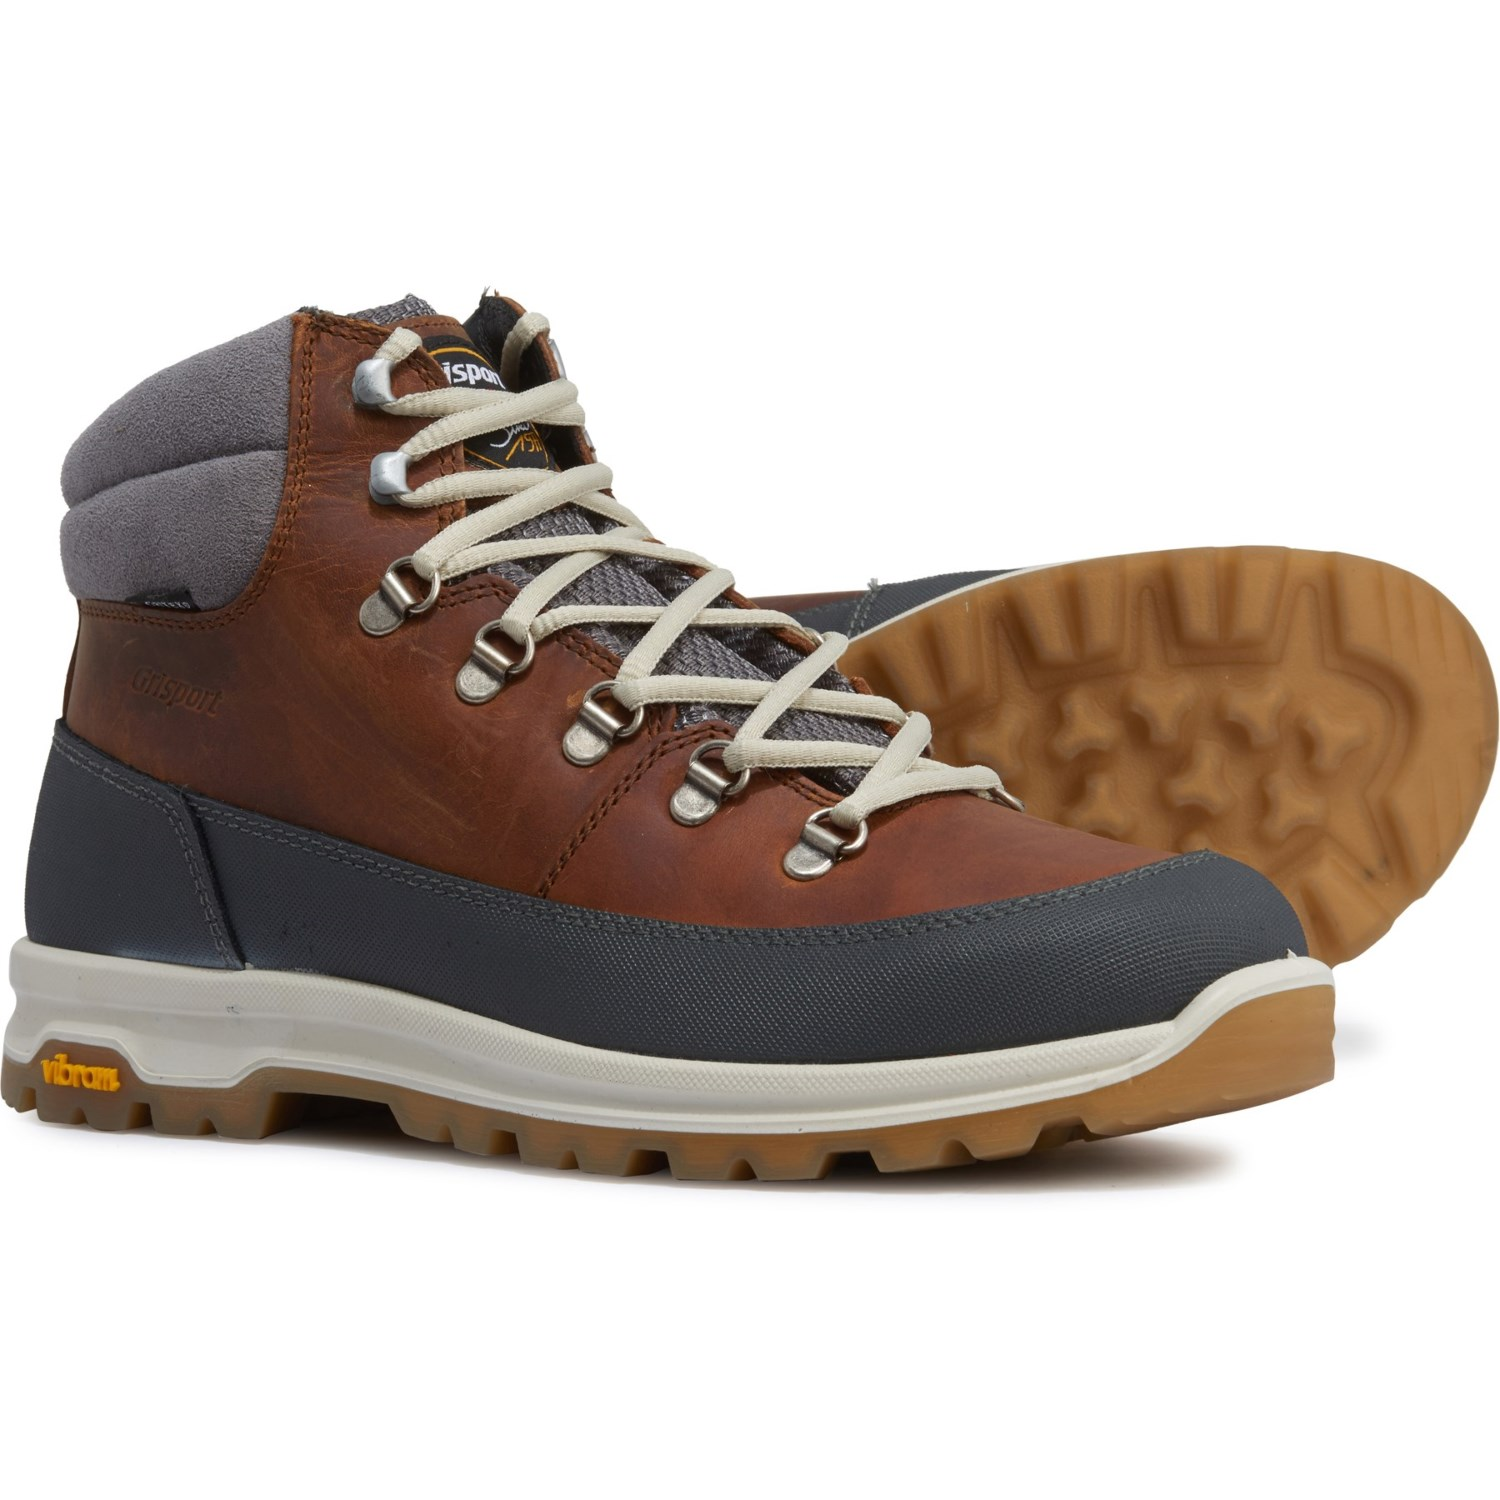 d70ae03b1f6 Grisport Made in Italy Defender Hiking Boots (For Men and Women ...